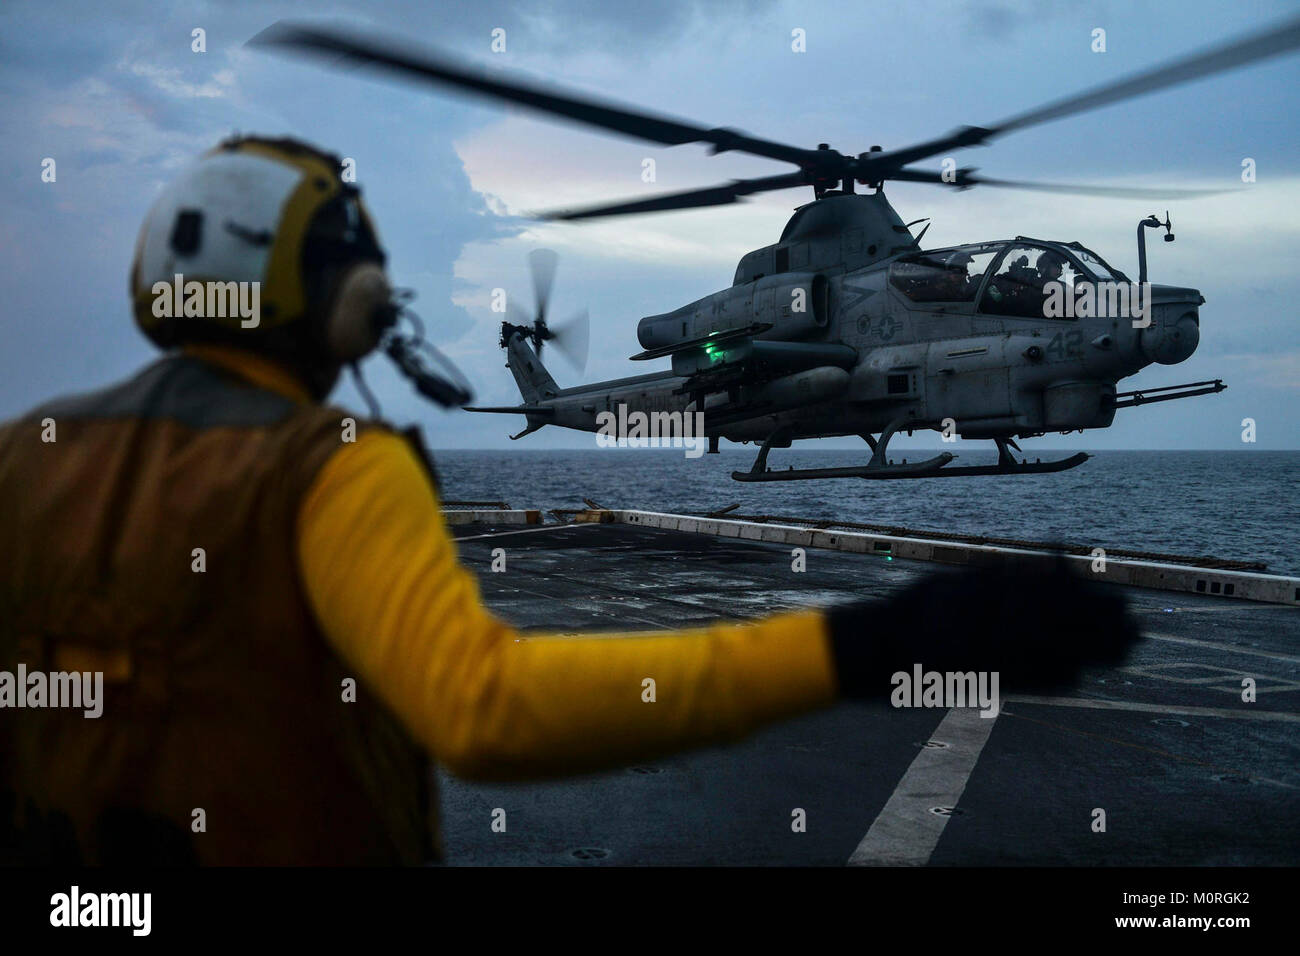 INDIAN OCEAN (Dec. 30, 2017) Aviation Boatswain Mate Handling Airman Ryan Sharland, from Newport Beach, Calif., directs a AH-1Z Viper attack helicopter, attached to Marine Medium Tiltrotor Squadron (VMM) 161 (reinforced), on the flight deck of the amphibious transport dock ship USS San Diego (LPD 22). San Diego, part of the America Amphibious Ready Group, with embarked 15th MEU, is operating in the Indo-Asia-Pacific region to strengthen partnerships and serve as a ready-response force for any type of contingency. (U.S. Navy Stock Photo